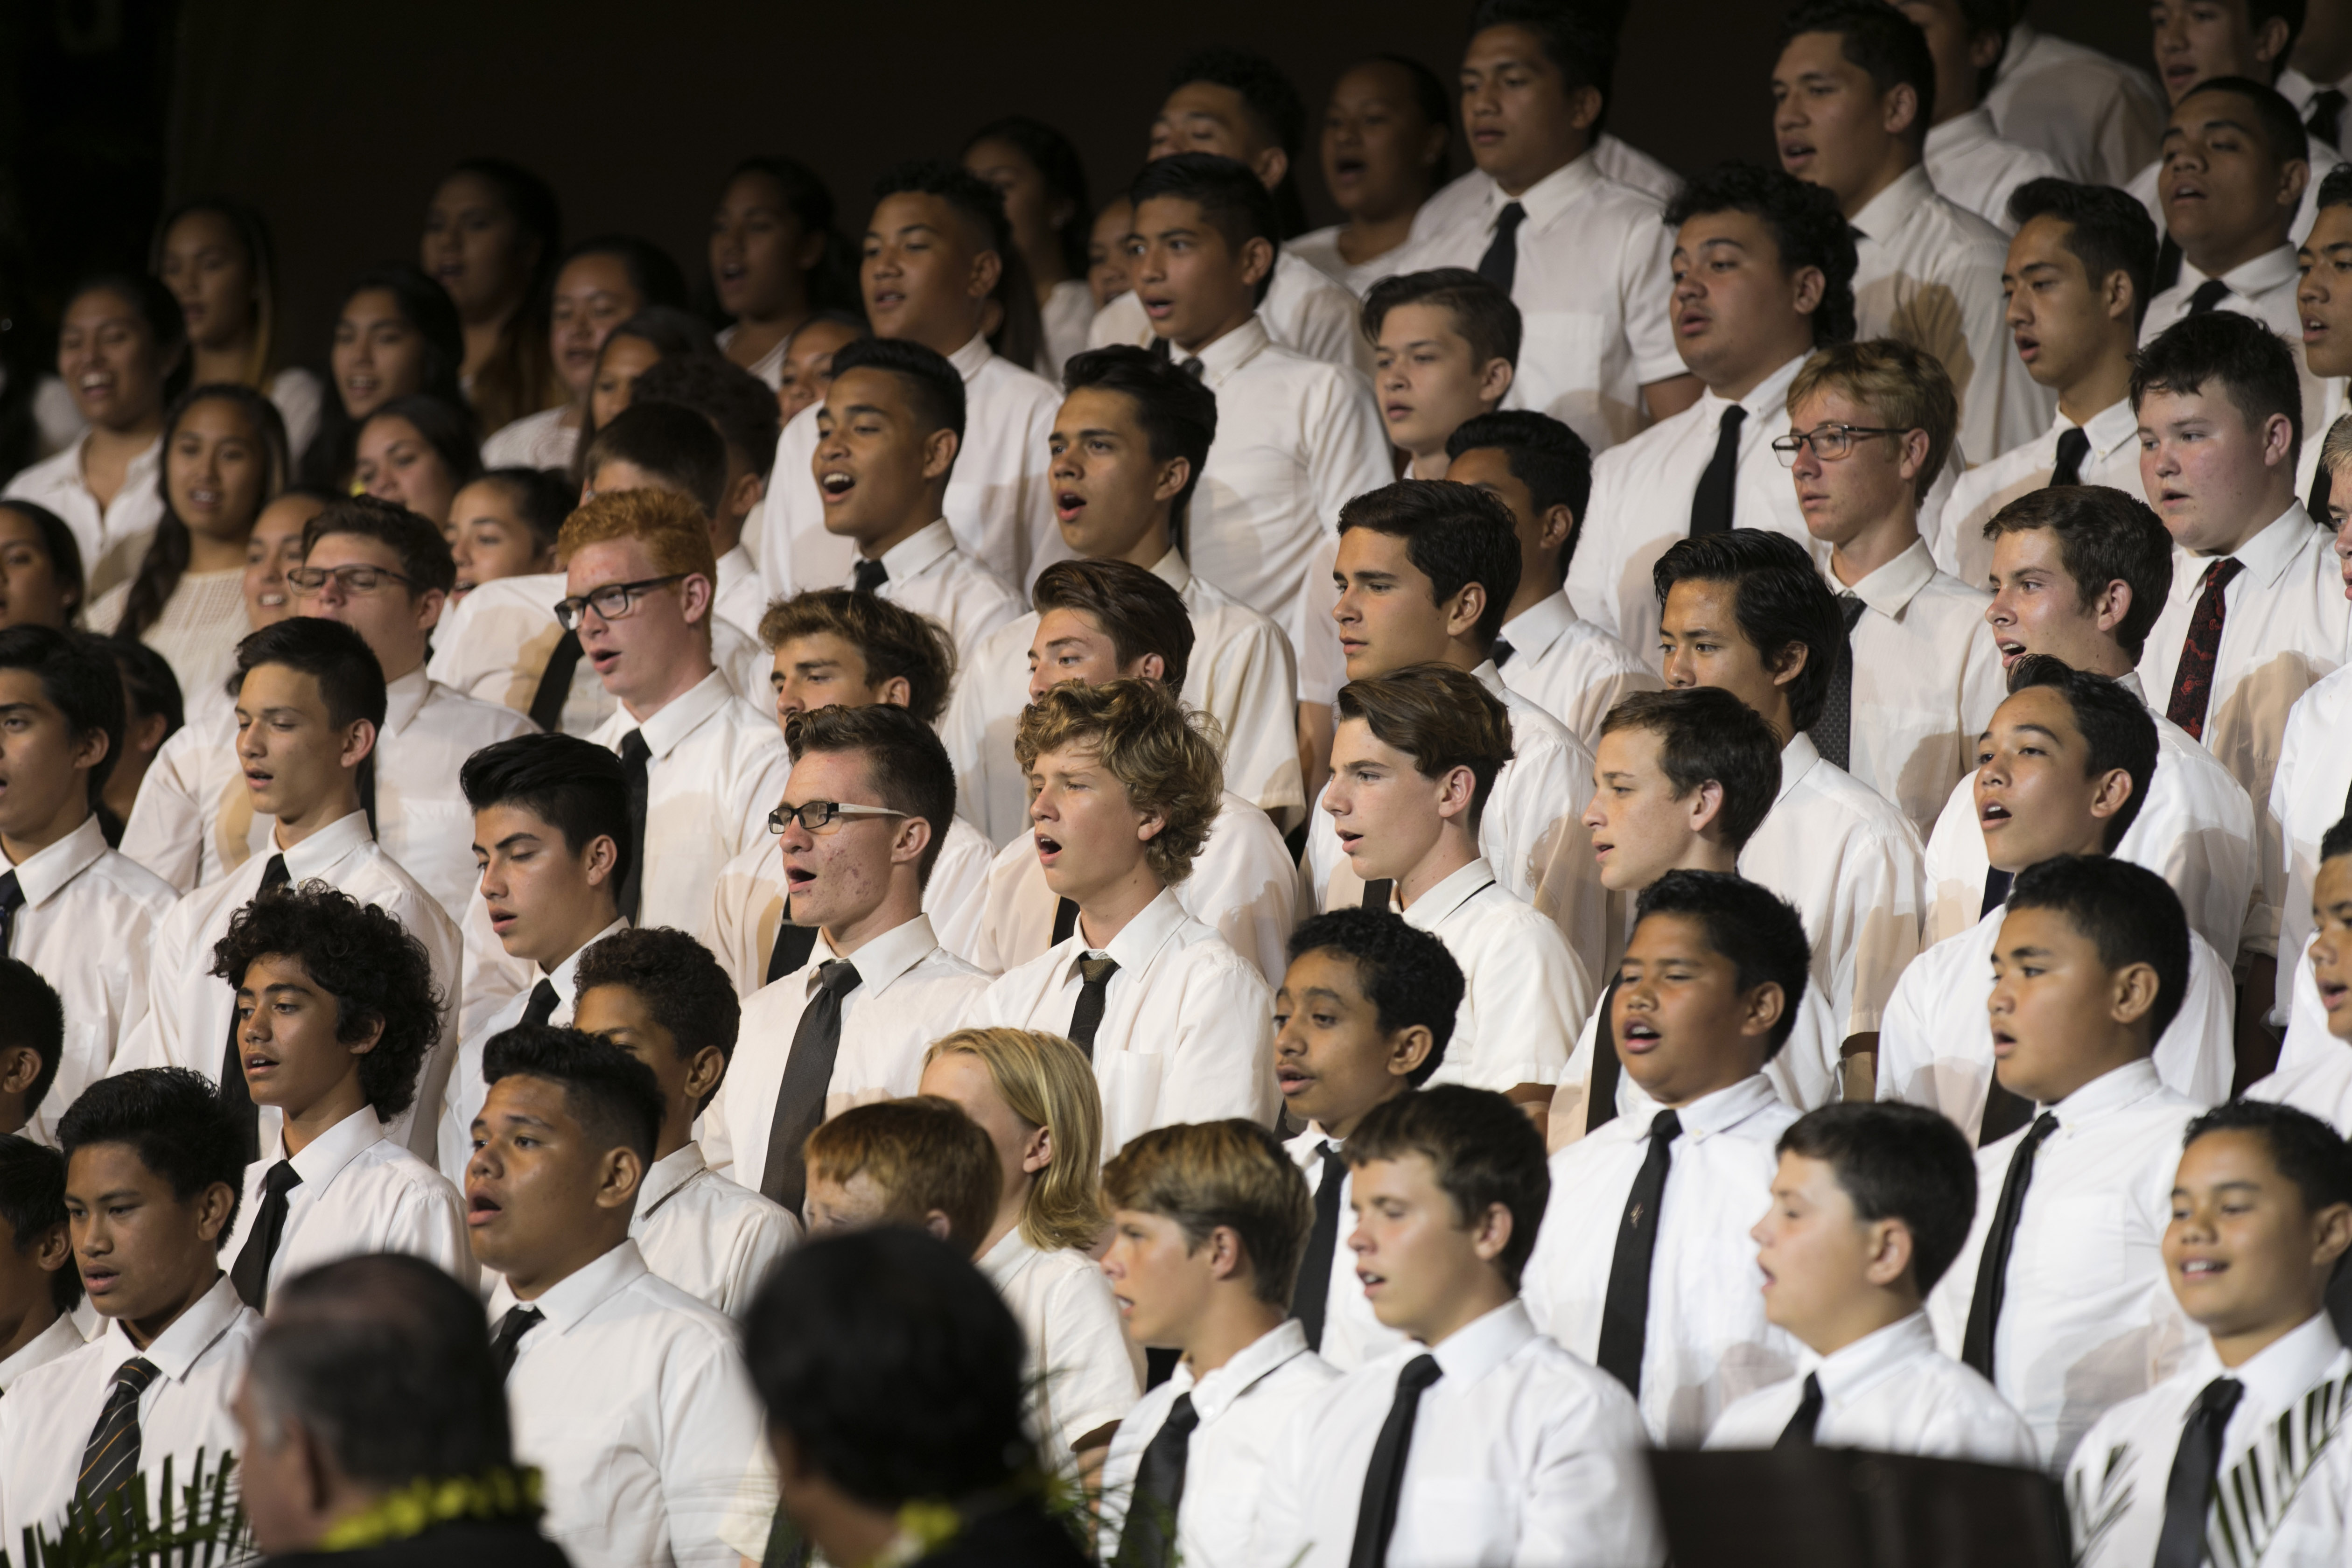 A choir performs during a special devotional with President Russell M. Nelson and his wife, Sister Wendy W. Nelson, and Elder Jeffrey R. Holland and his wife, Sister Patricia T. Holland, held in Laie, Hawaii on April 22.